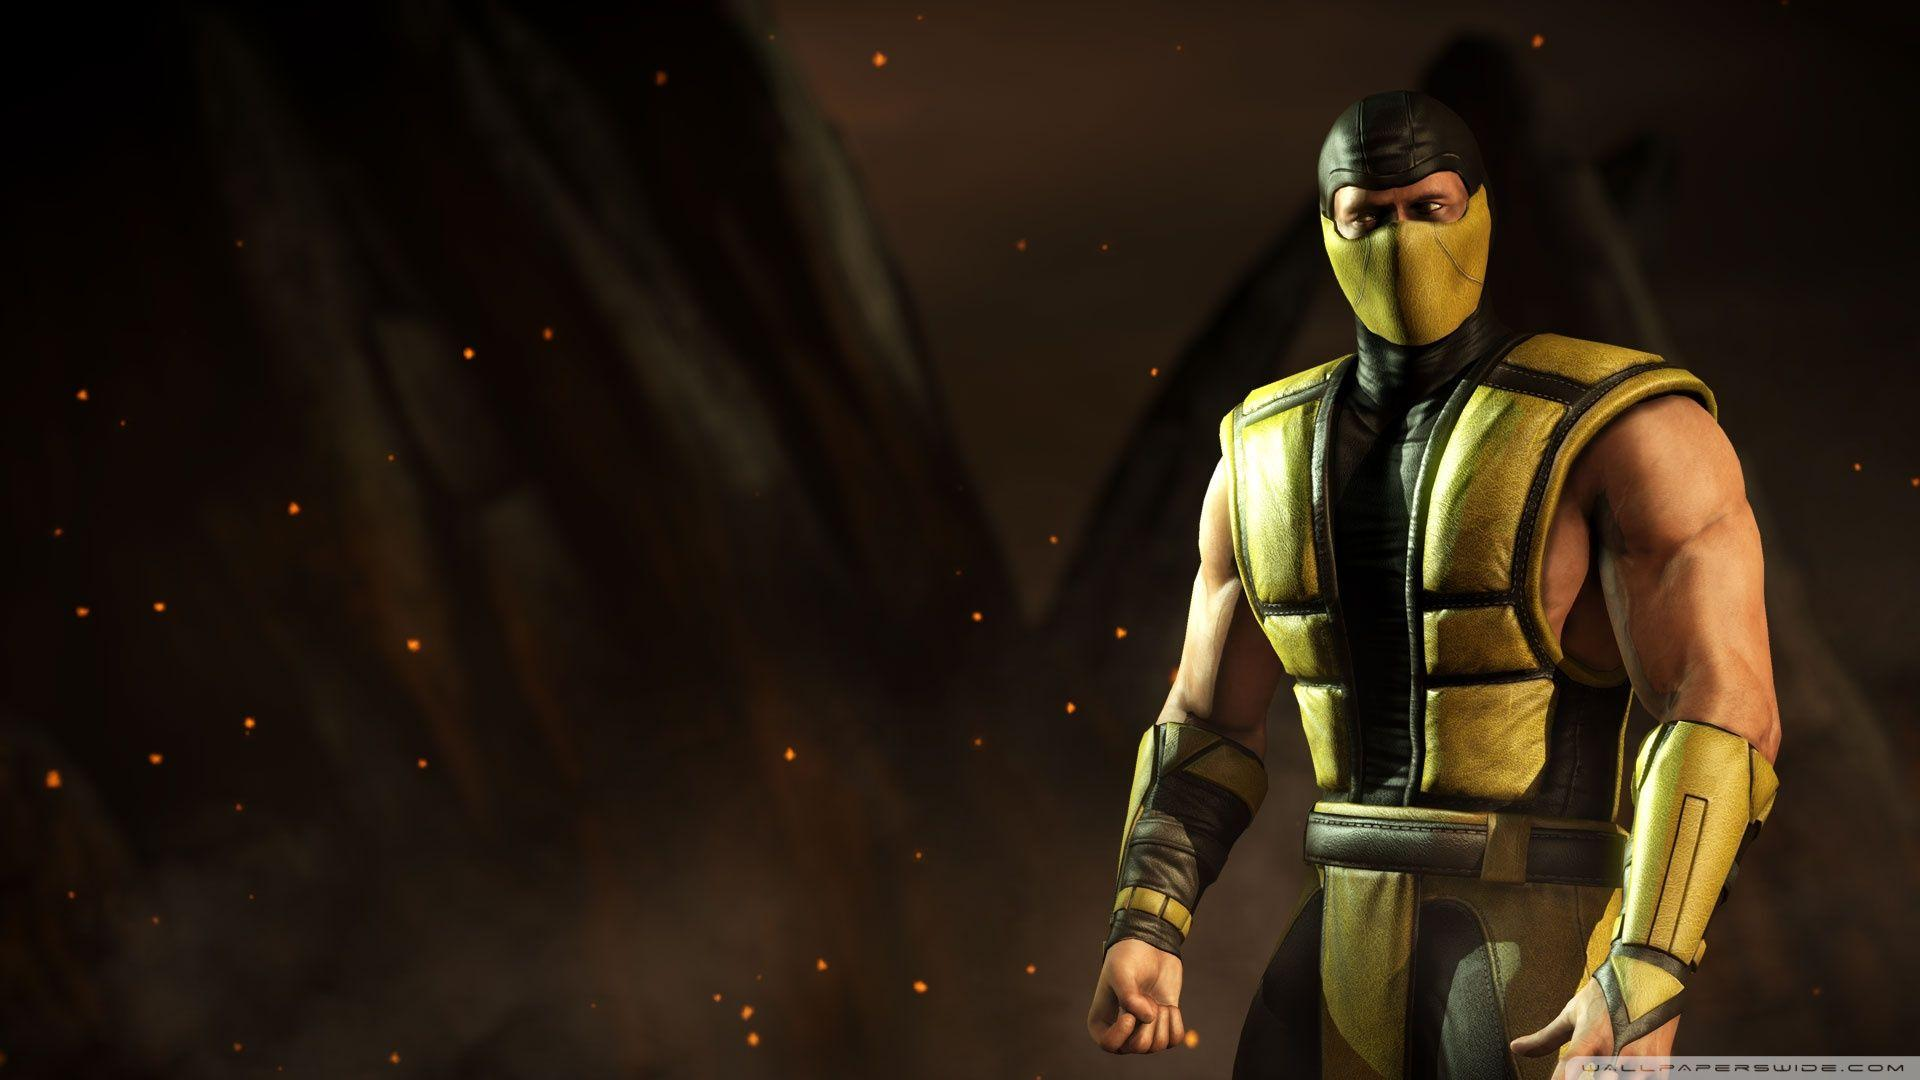 Mortal Kombat X Scorpion ❤ 4K HD Desktop Wallpapers for 4K Ultra HD